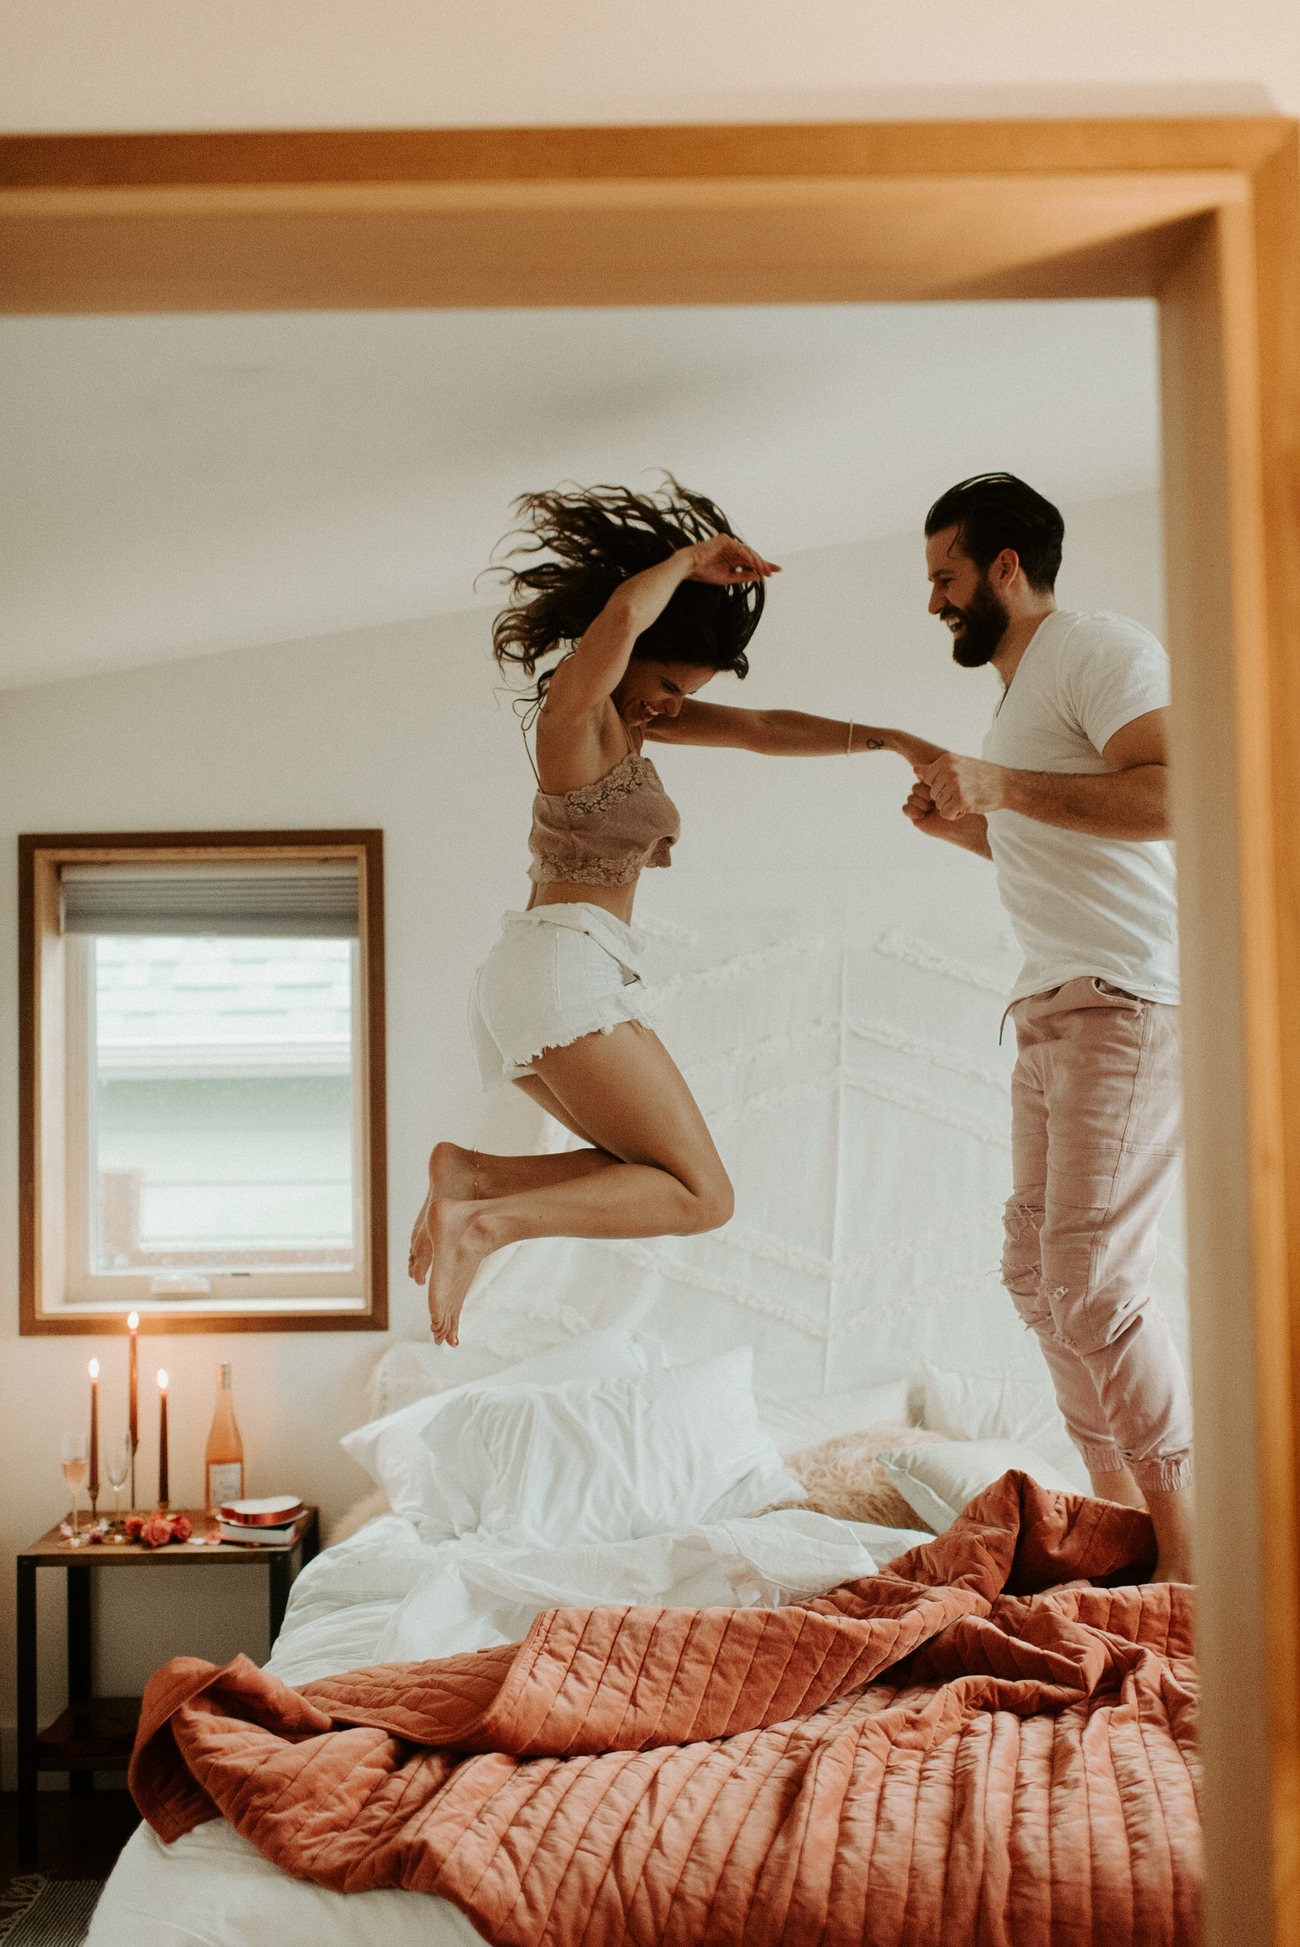 Staycation Honeymoon Ideas to Celebrate Your Love Close to Home